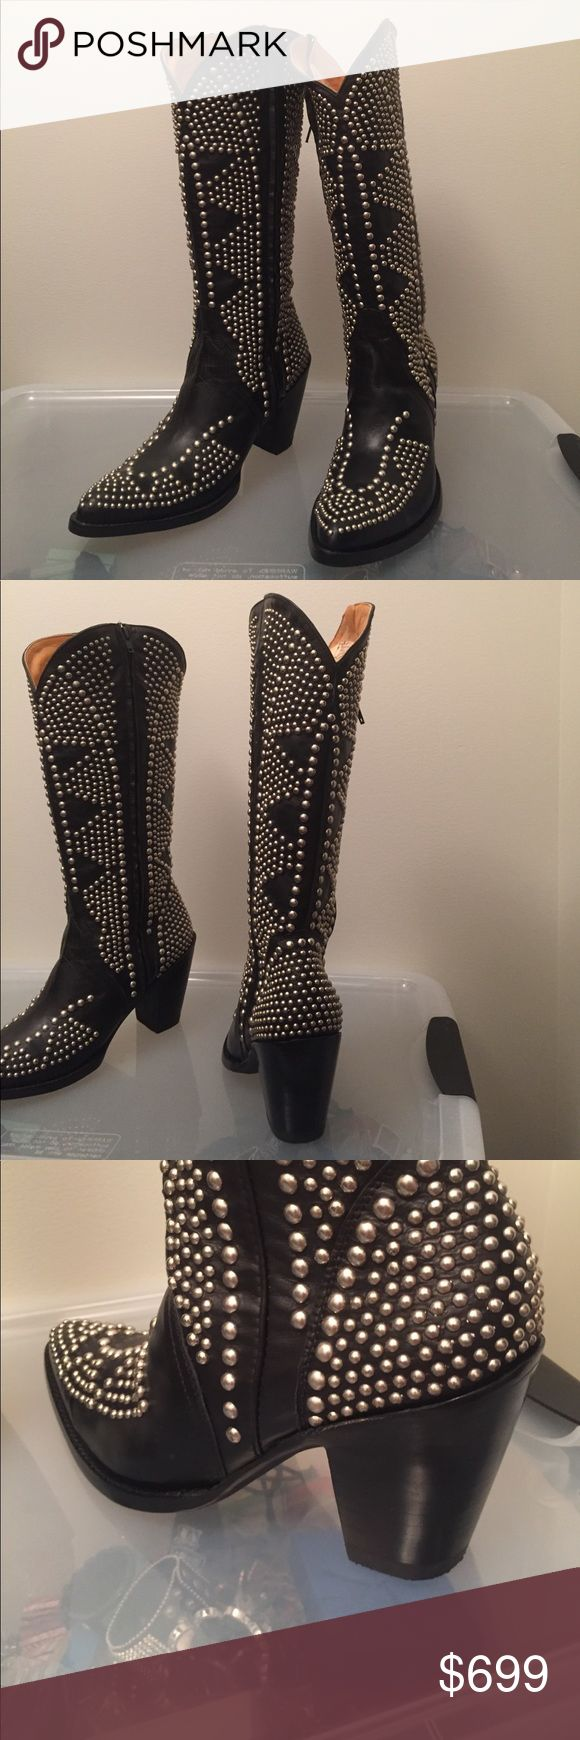 Old gringo fatale boots My feet are a bit too long and narrow for these 3.5 inch heels 😒 Old Gringo Shoes Heeled Boots